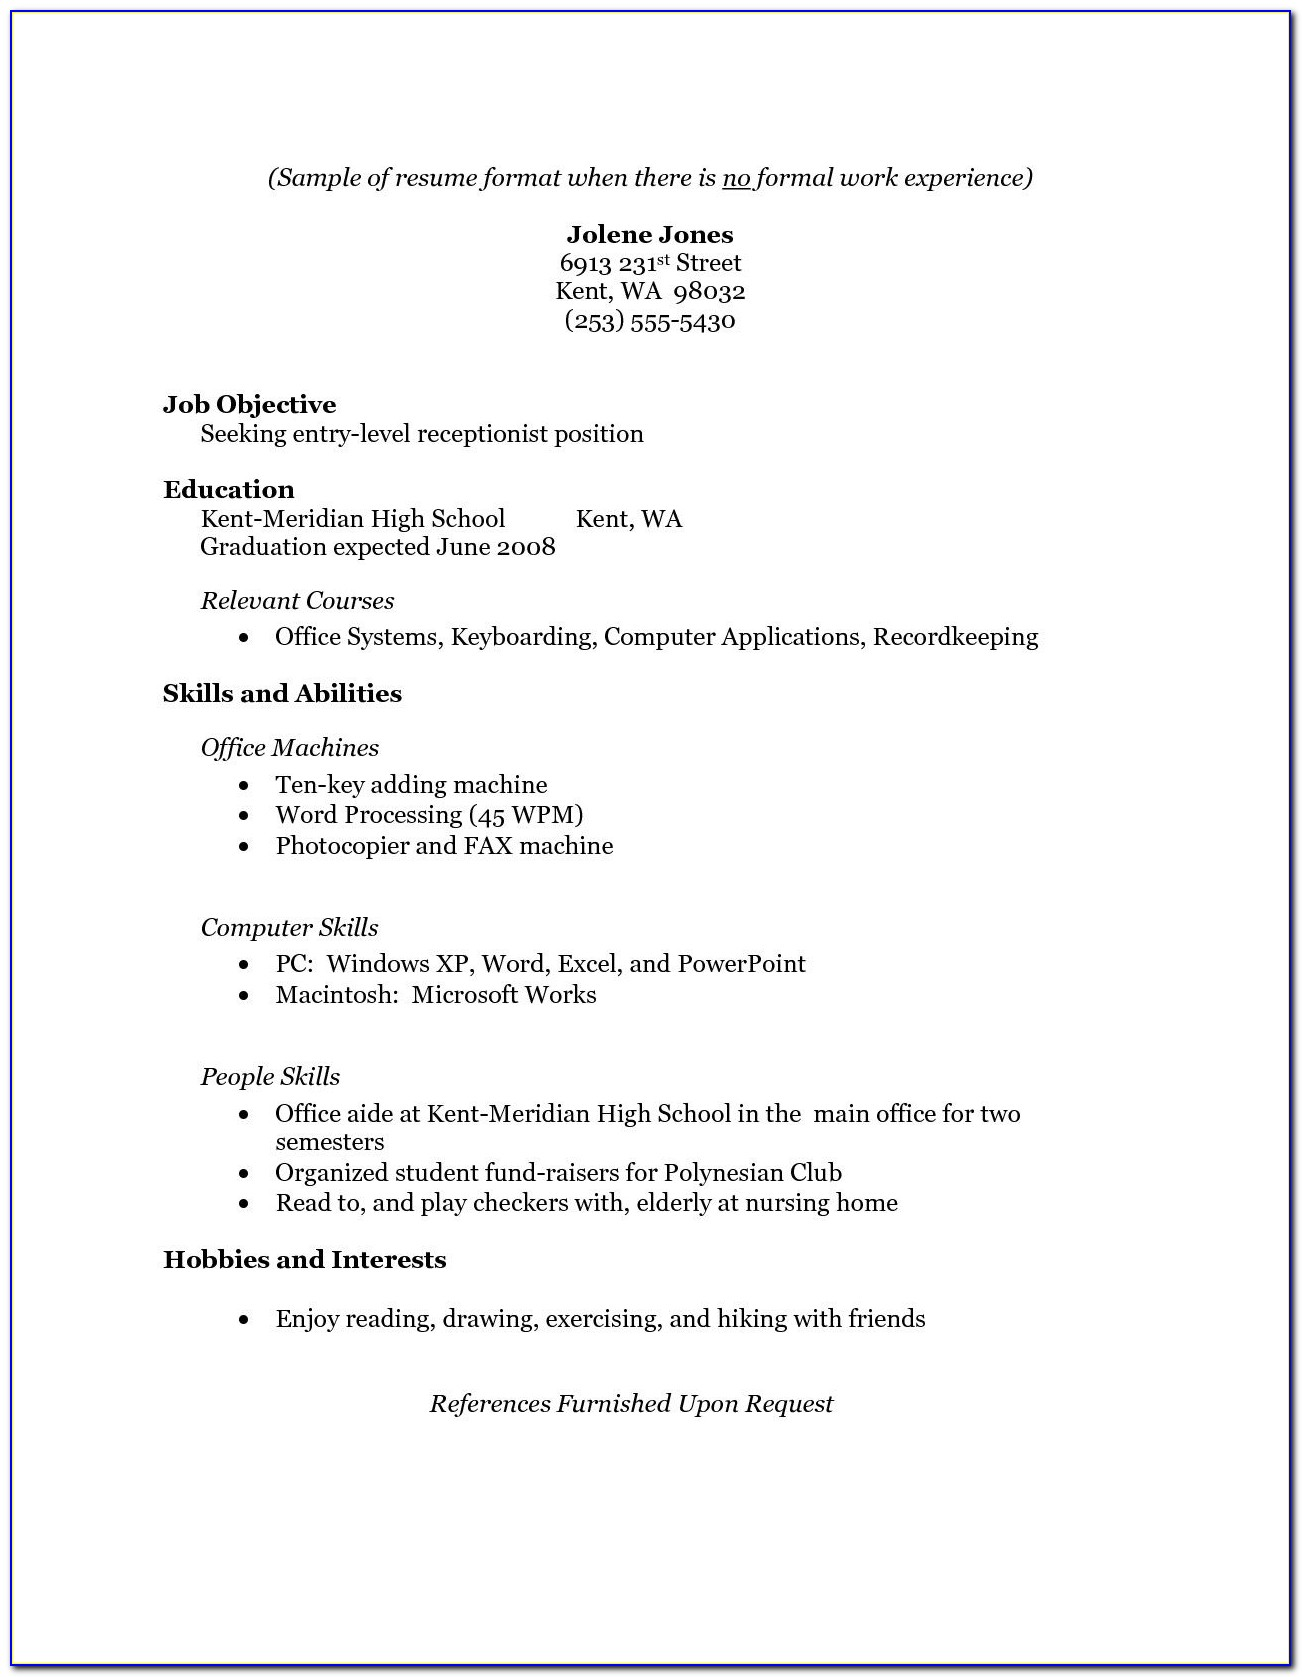 Cv Template Without Experience